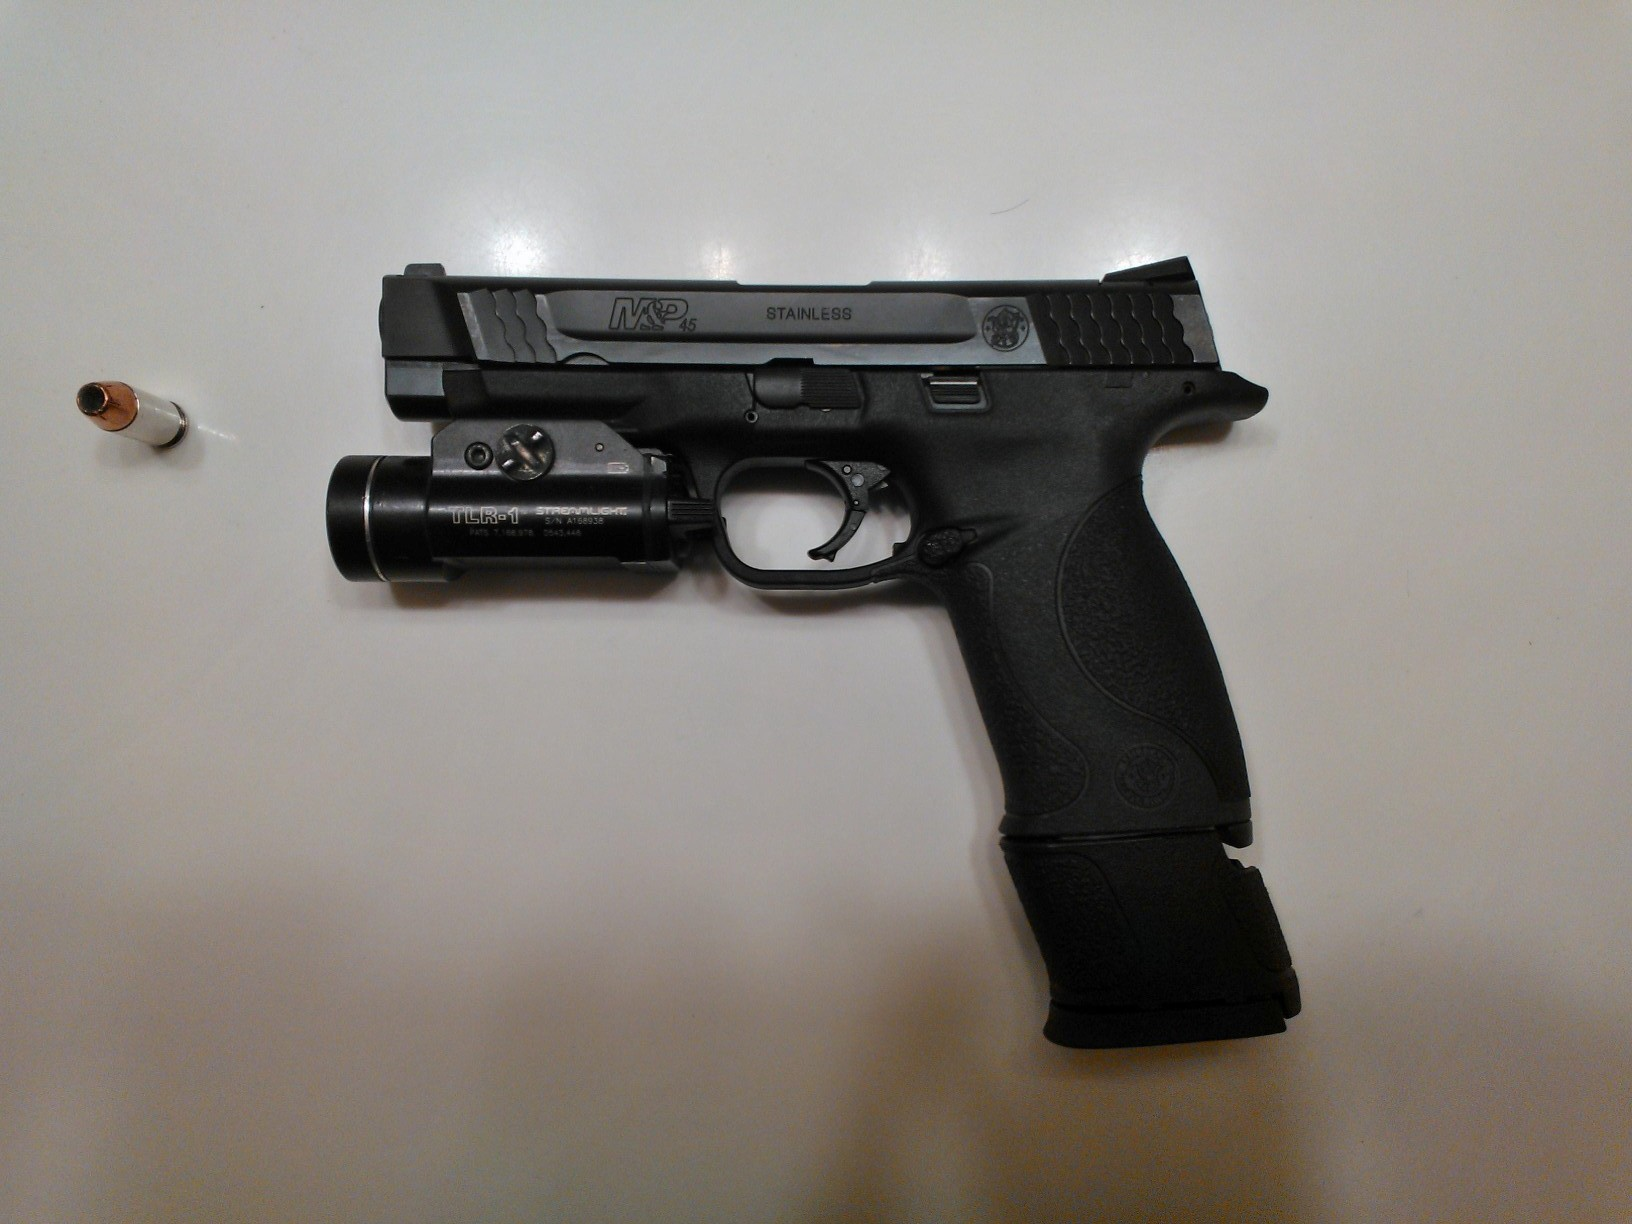 Official m&p picture thread!-wp_000242.jpg